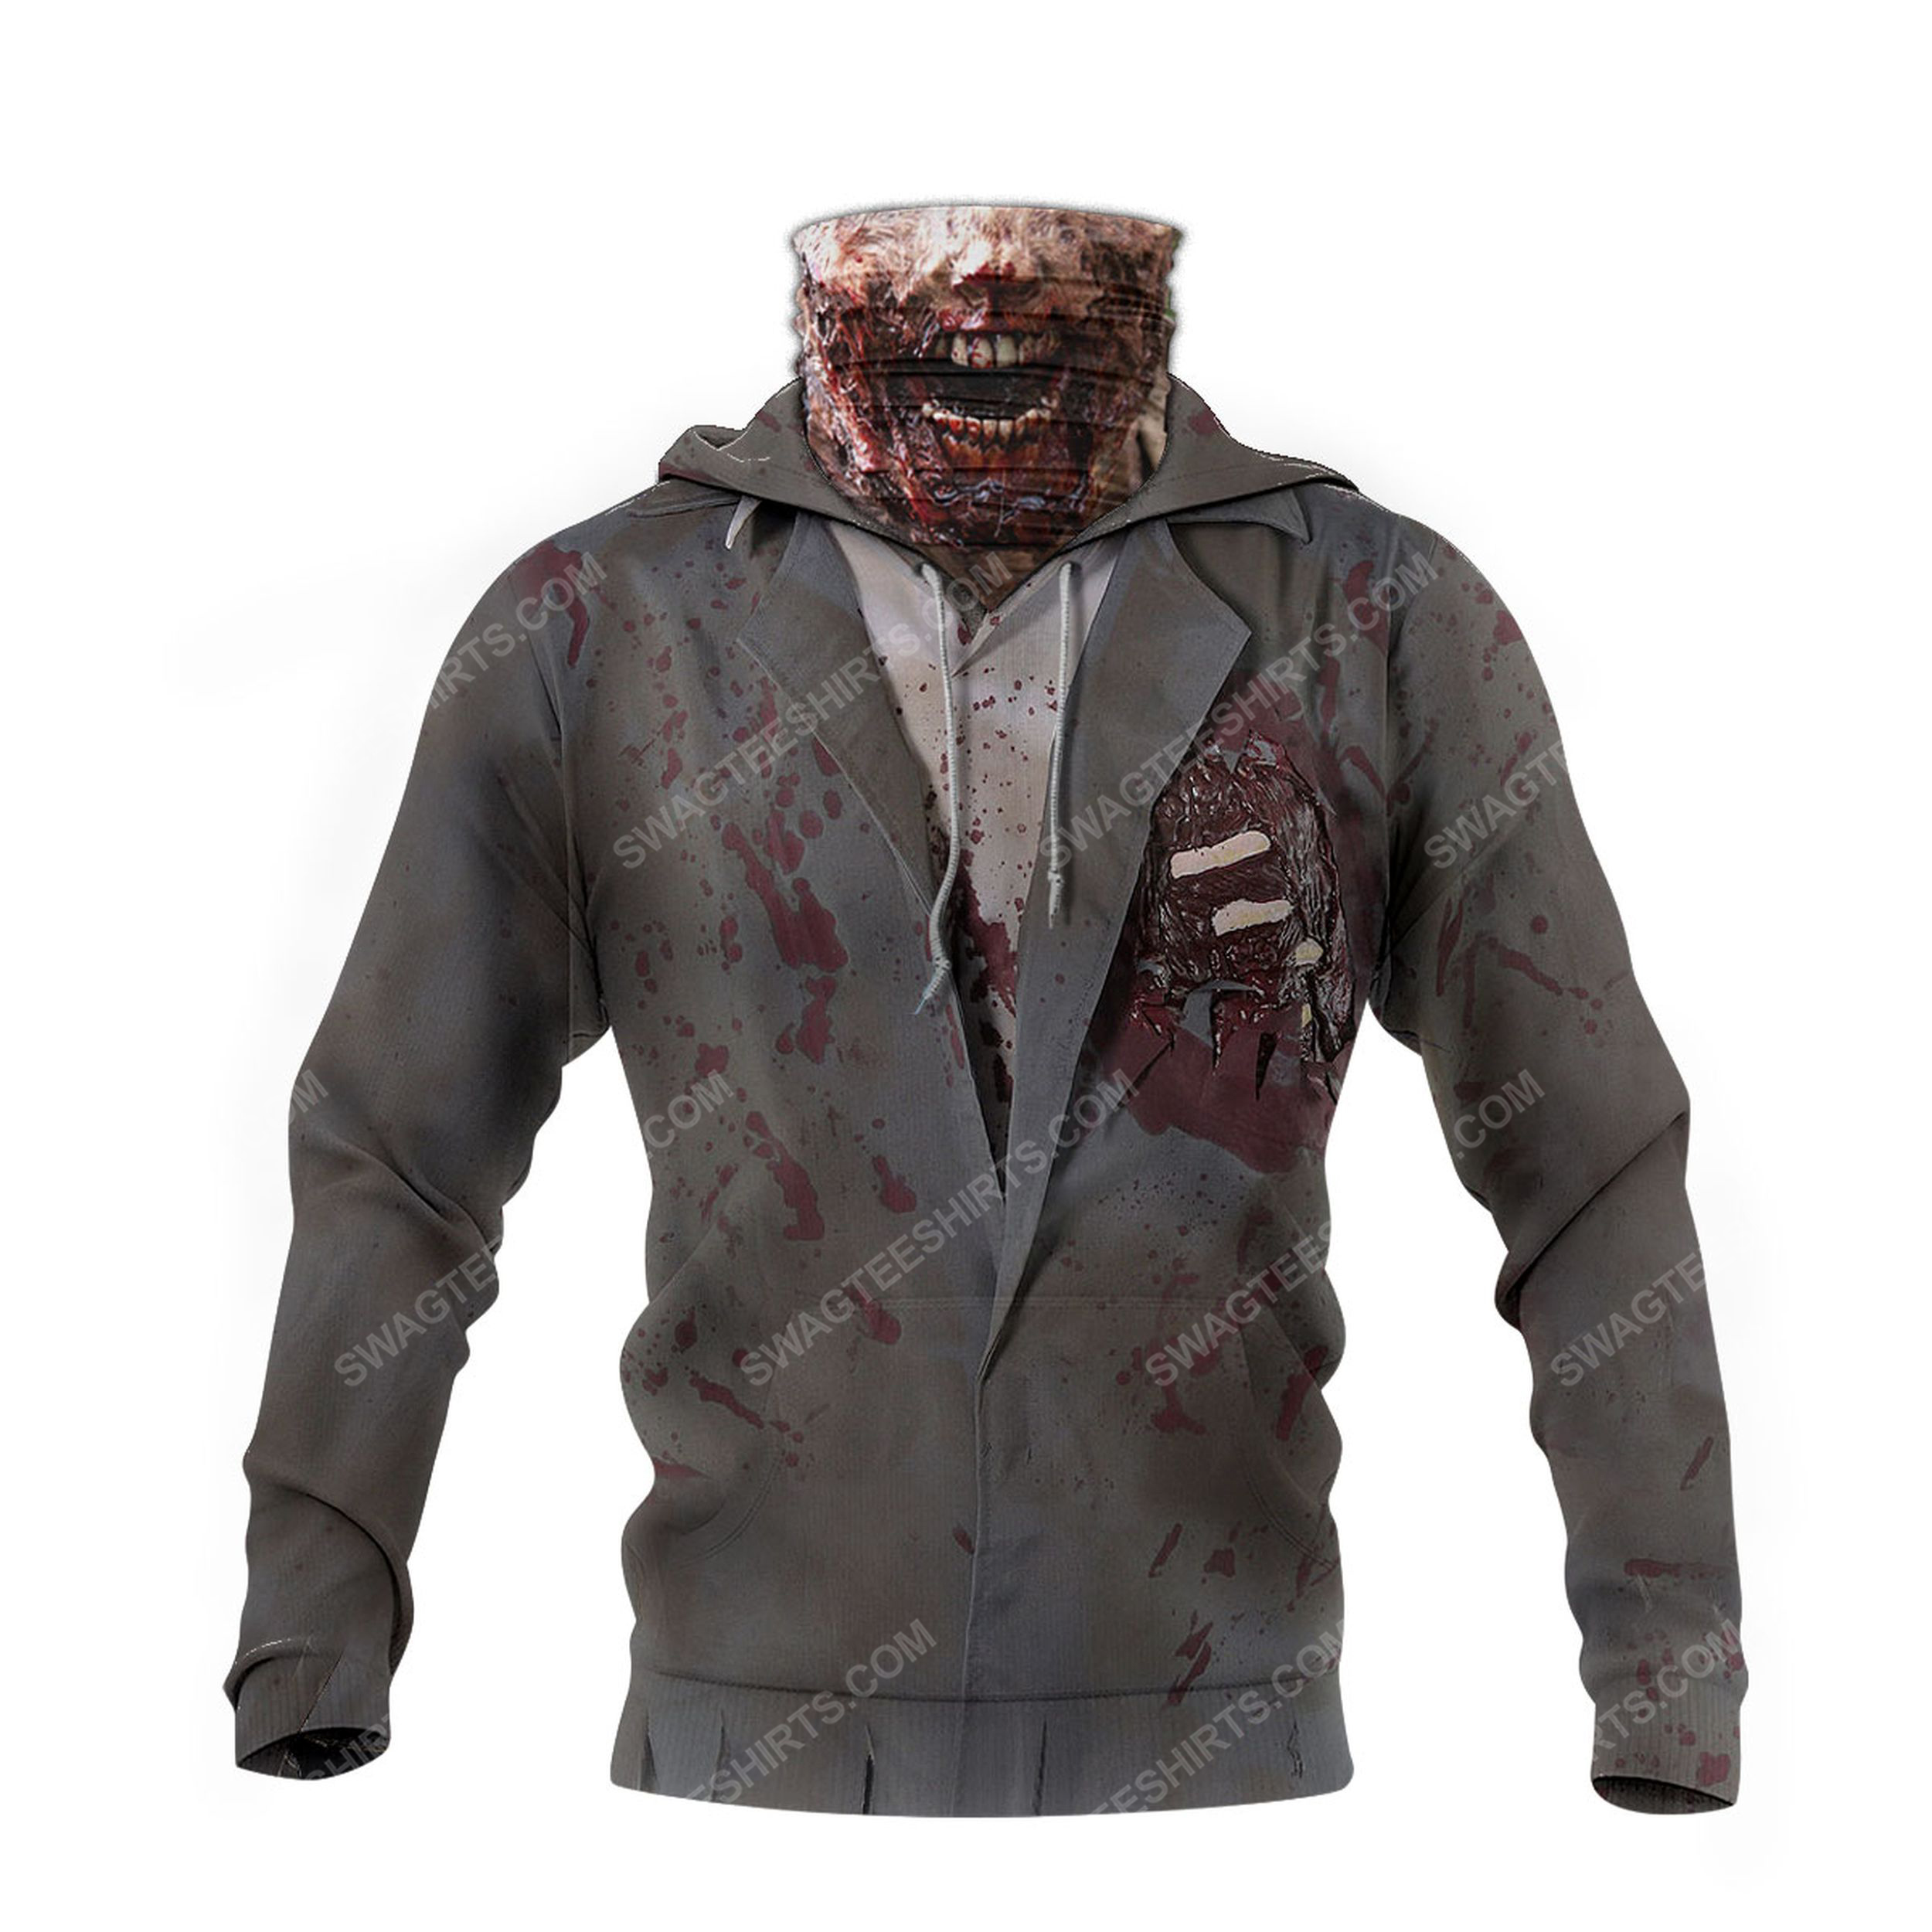 The zombie for halloween full print mask hoodie 4(1)